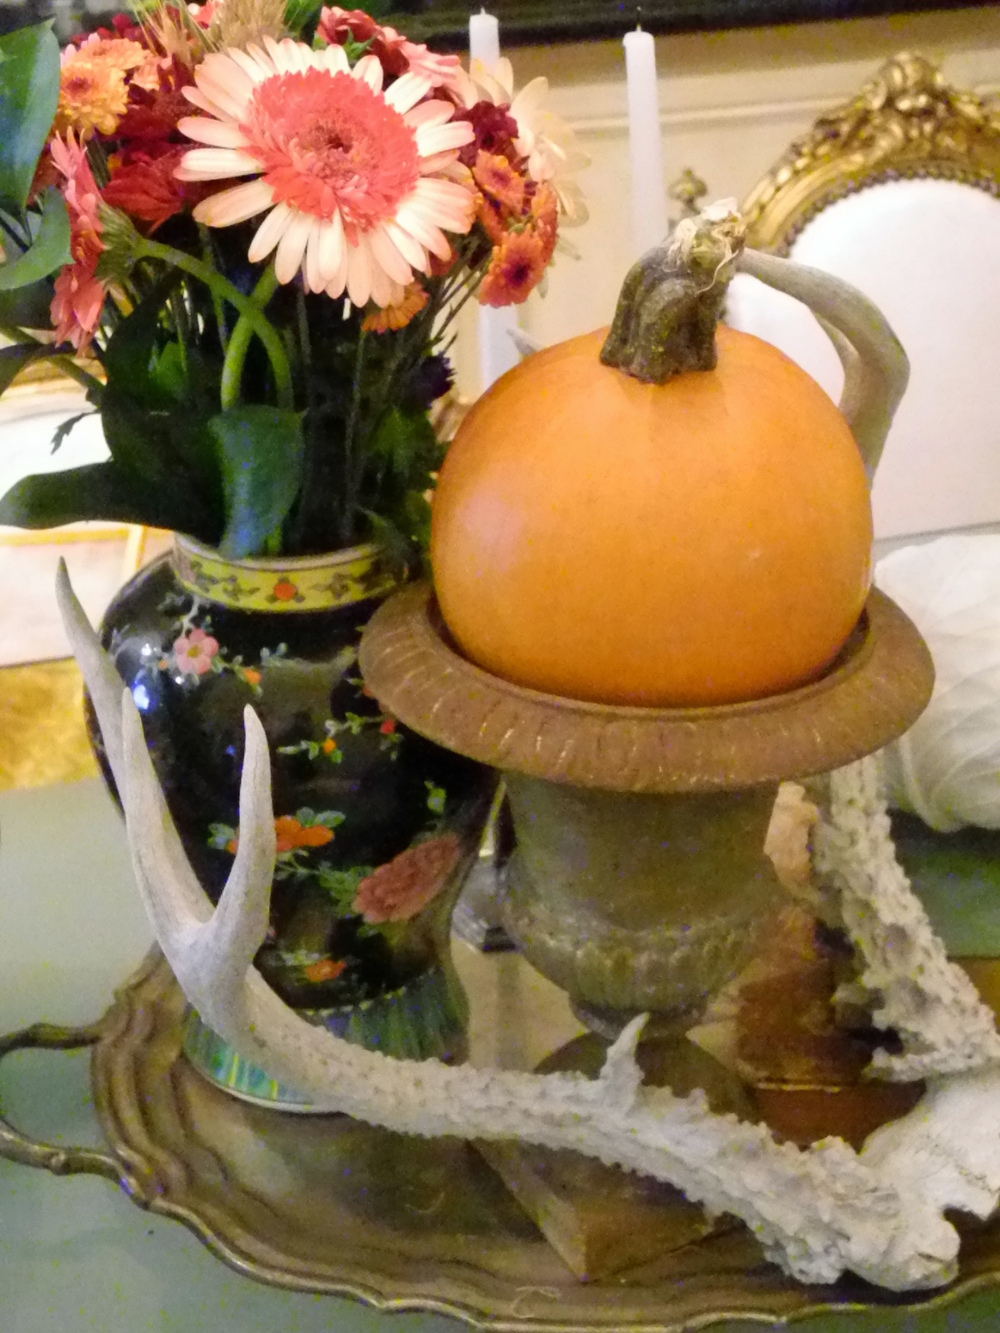 Pumpkins in an urn, yes please!